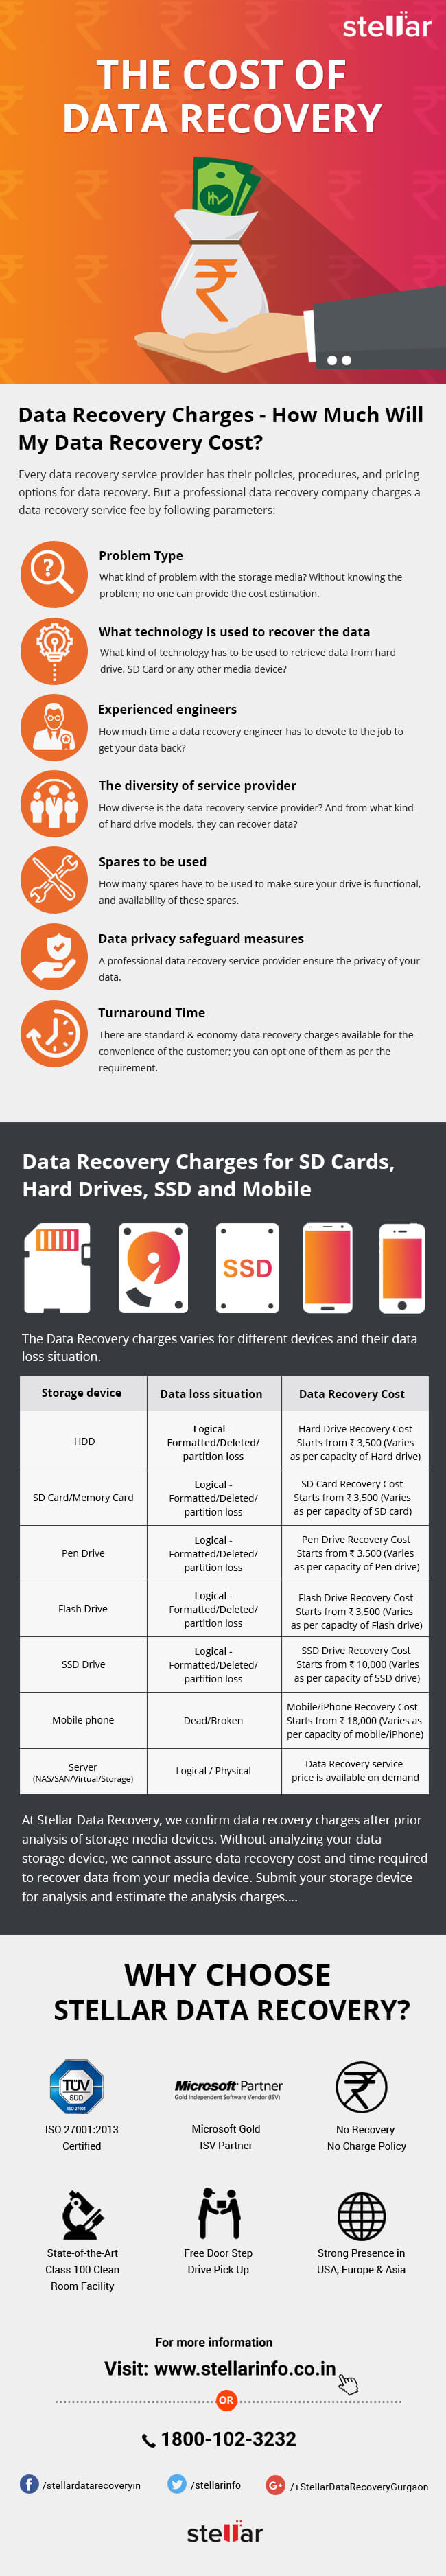 Data Recovery Cost infographic